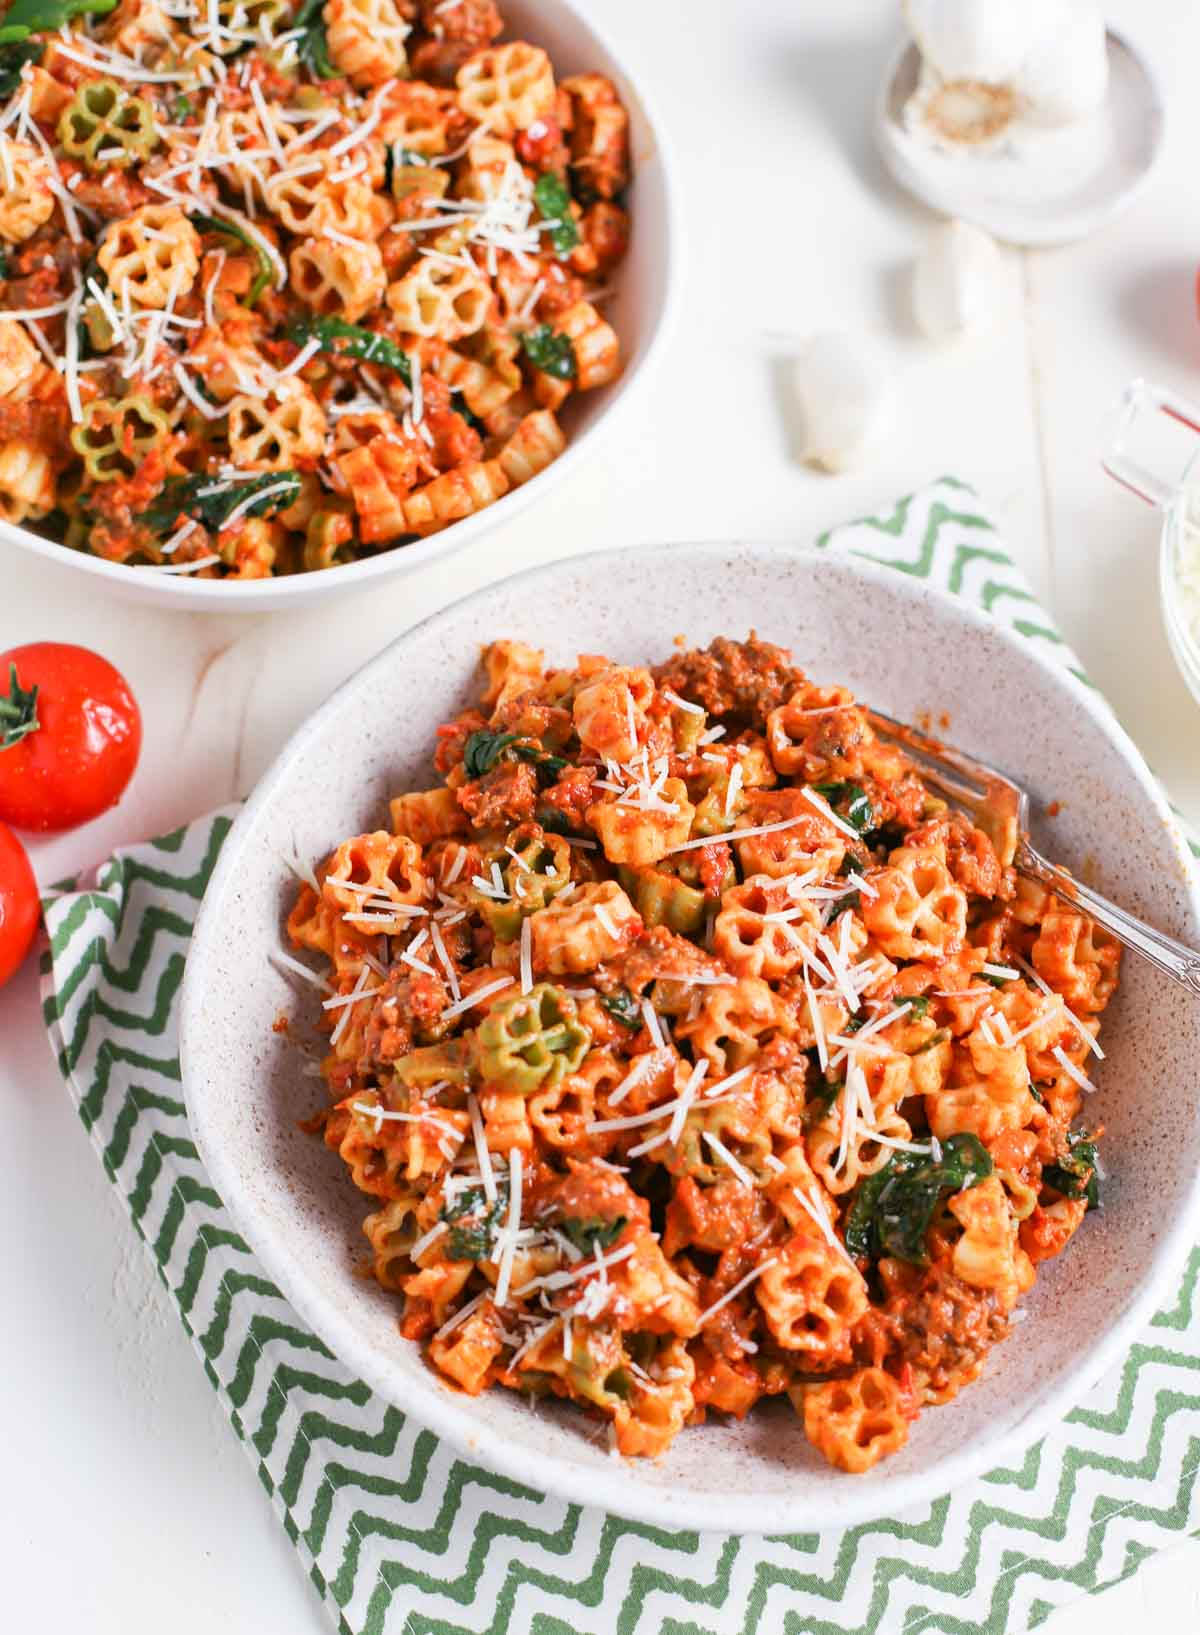 Two bowls of Pasta with Spicy Sausage and Tomato Cream Sauce